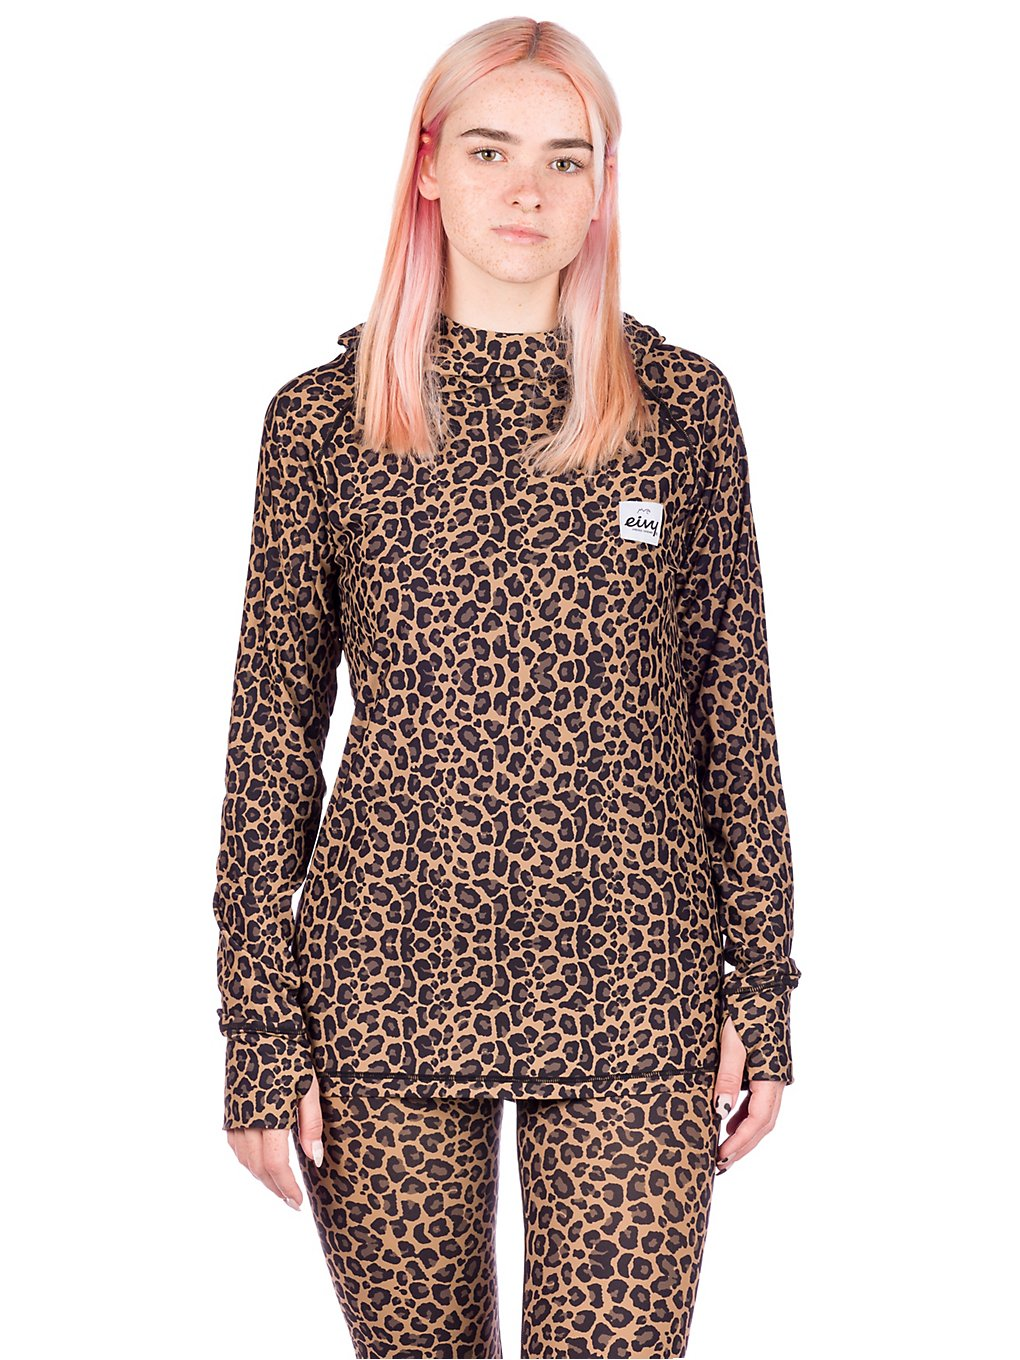 Eivy Icecold Hood Base Layer Top patroon